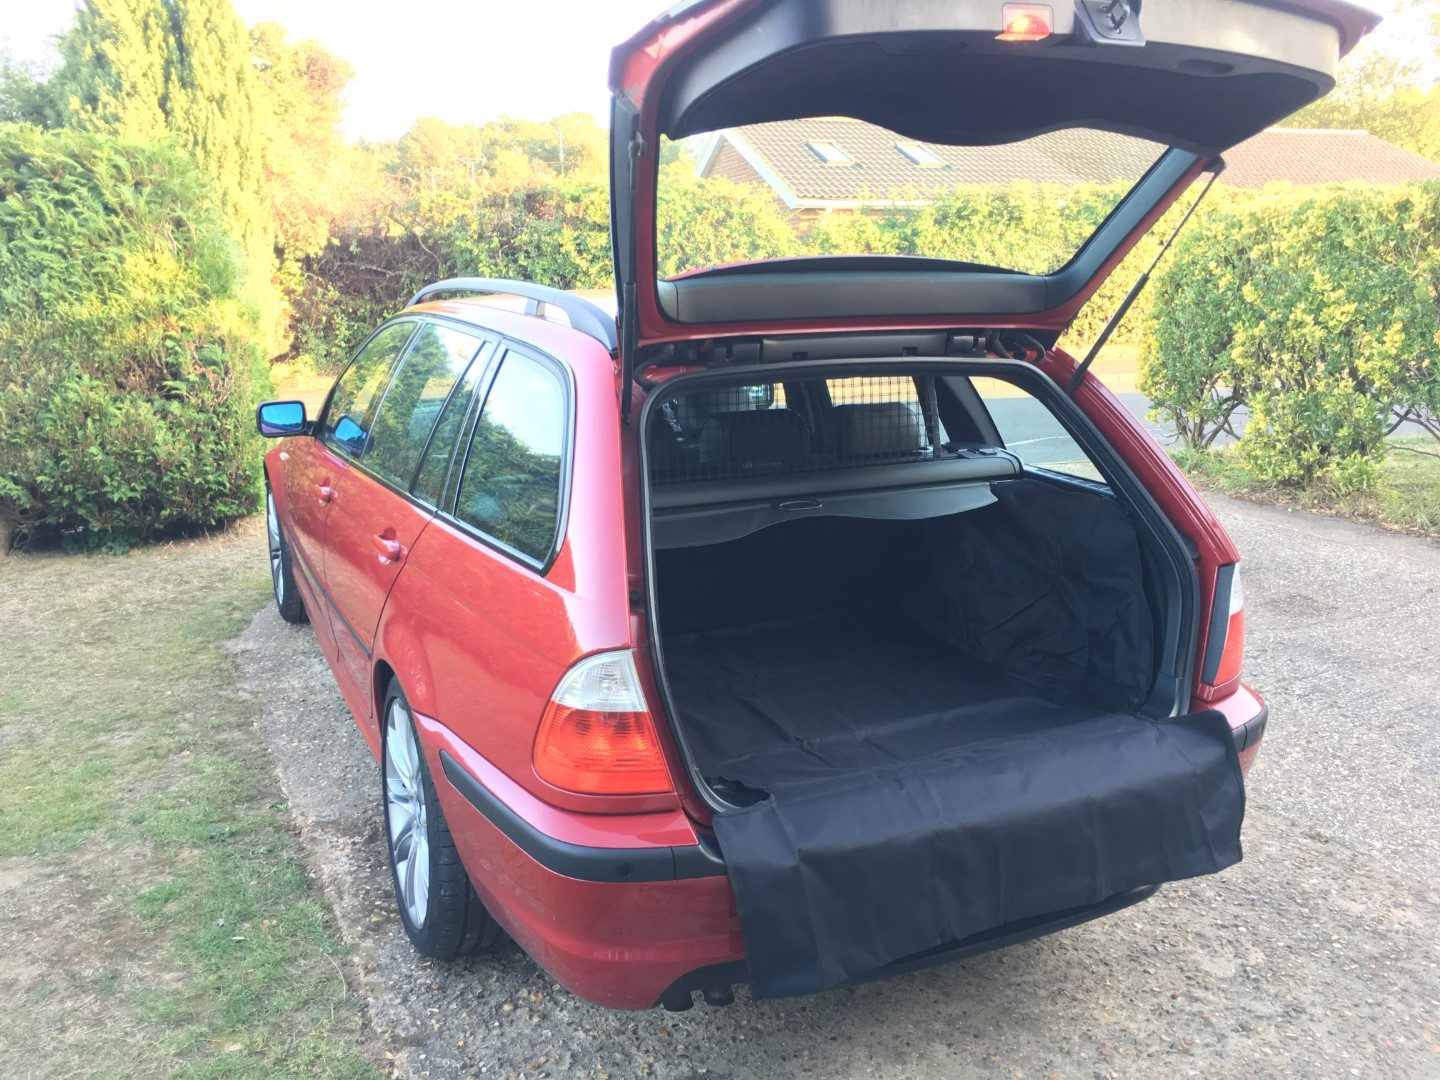 330d with boot liner in place